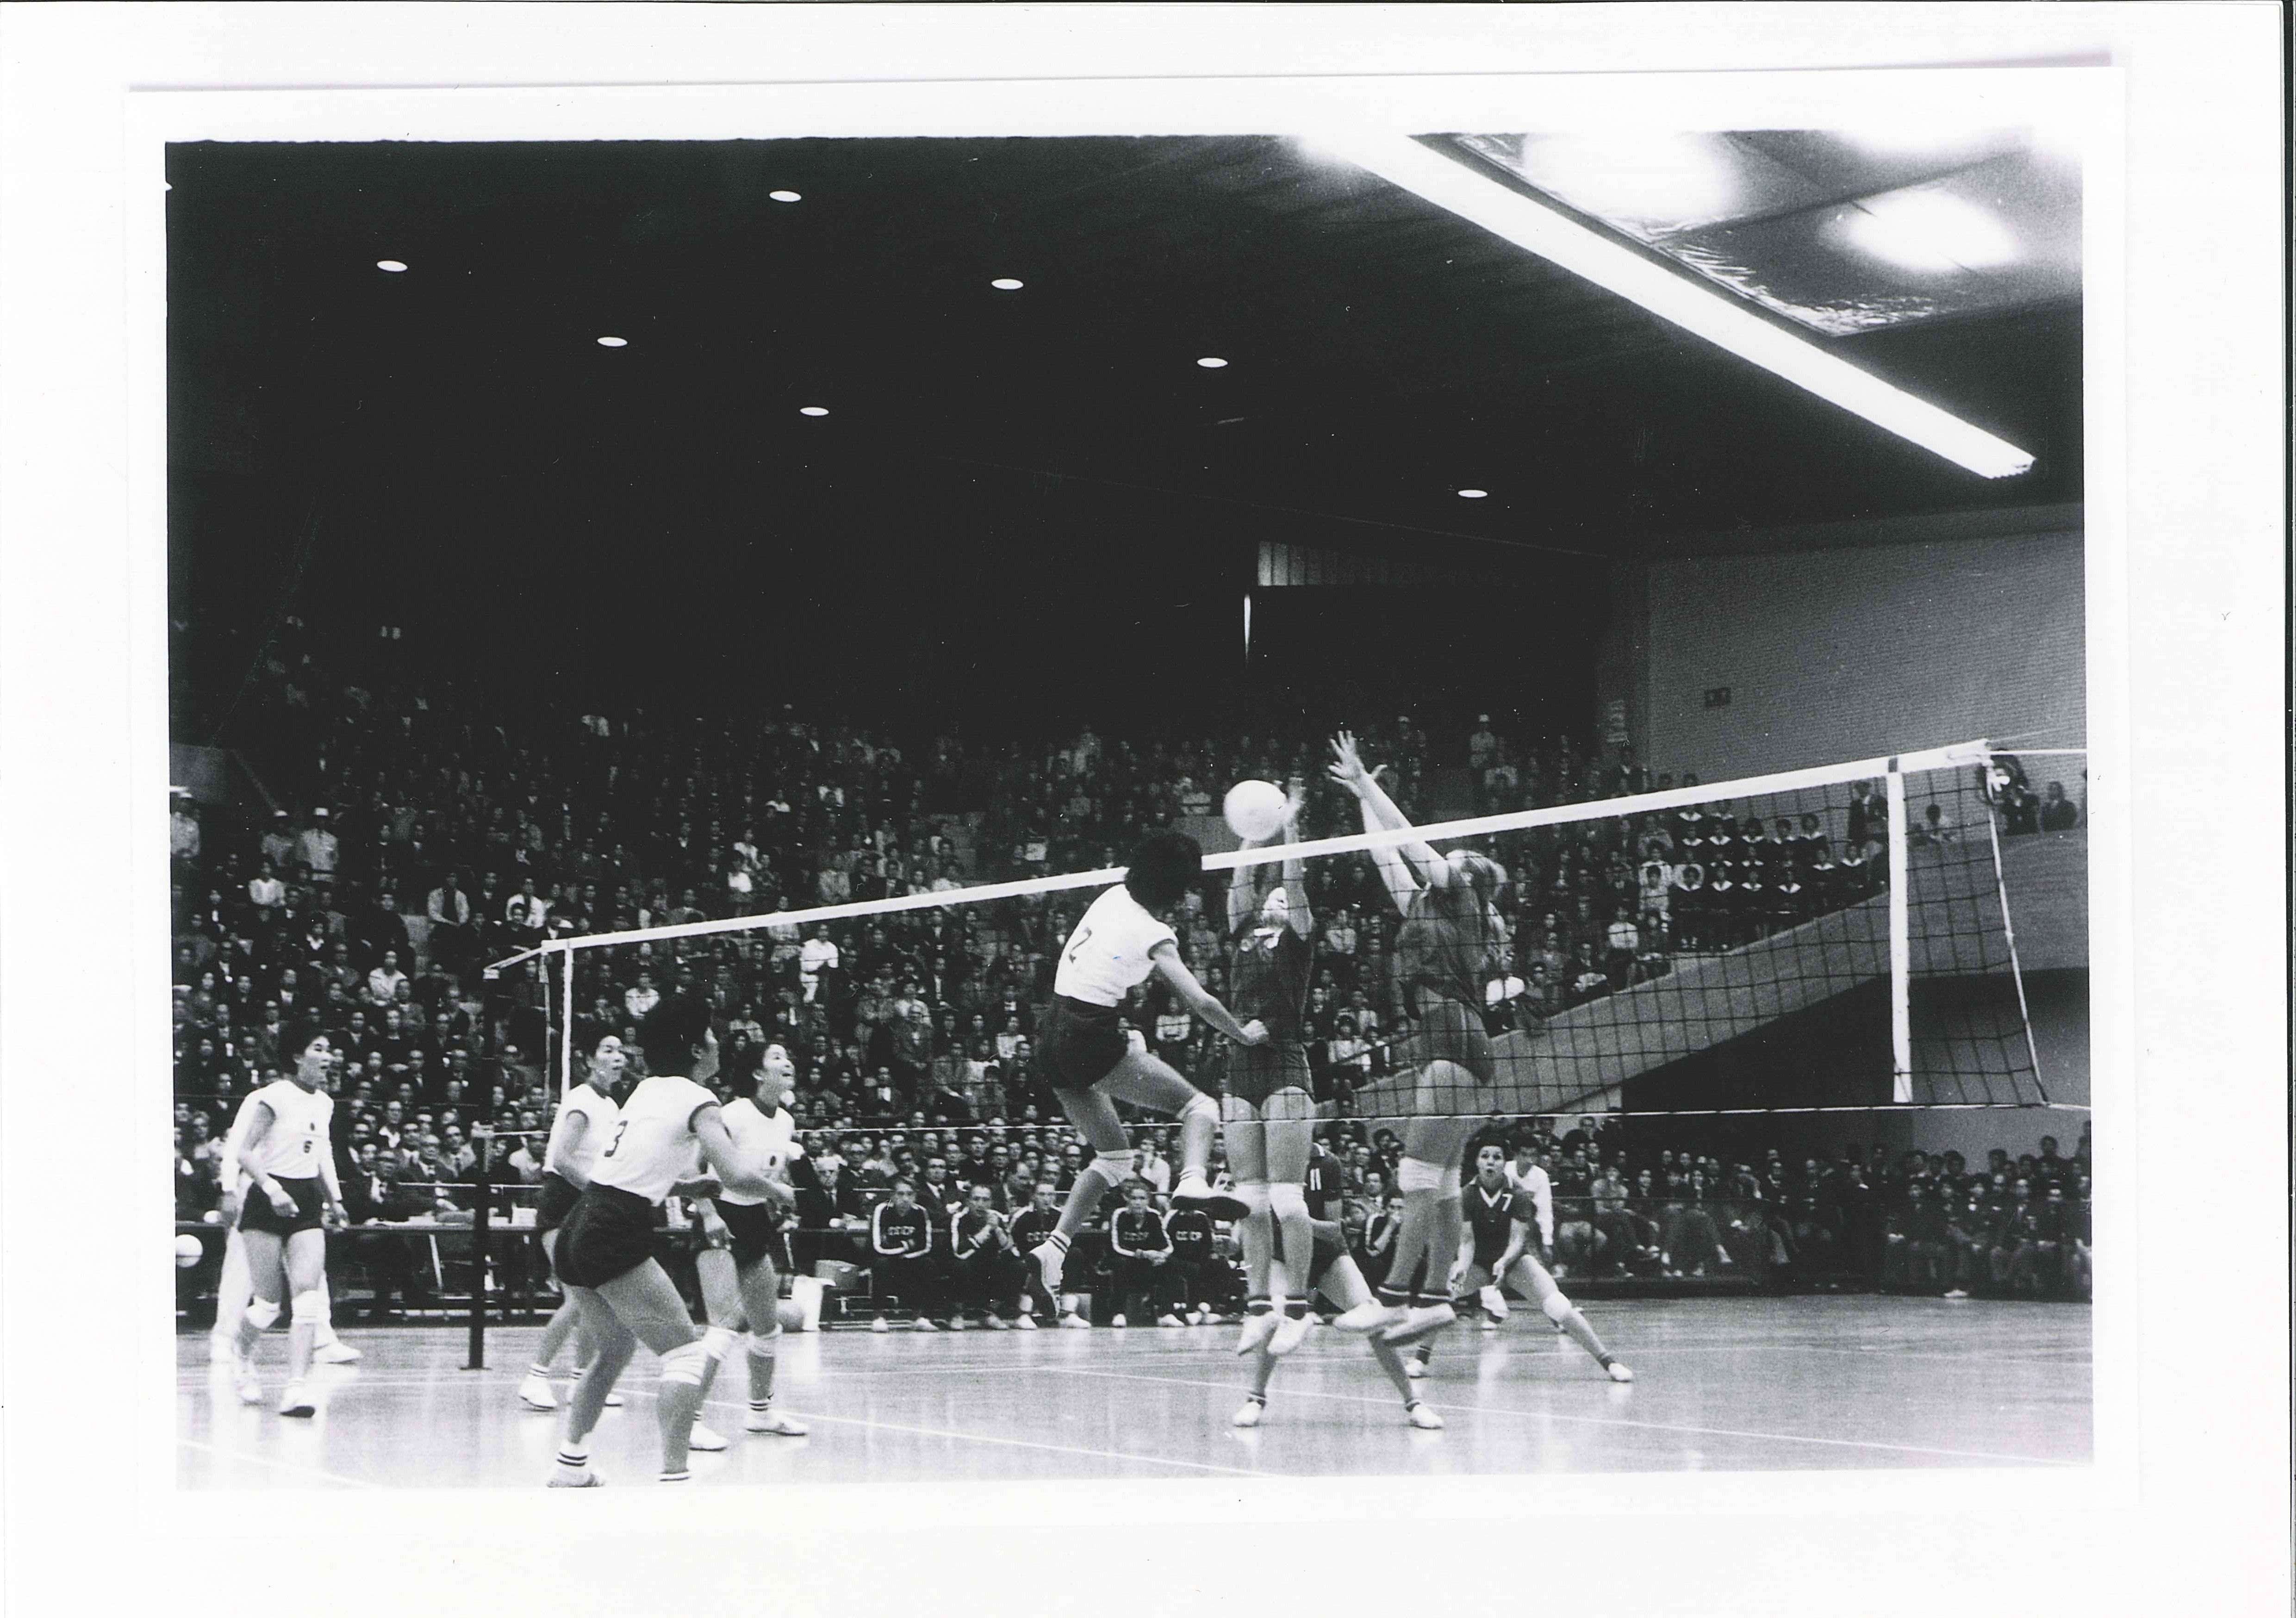 Inagural Volleyball Games At 1964 Olympics In Tokyo Japan Volleyball History 1964 Olympics Olympic Games